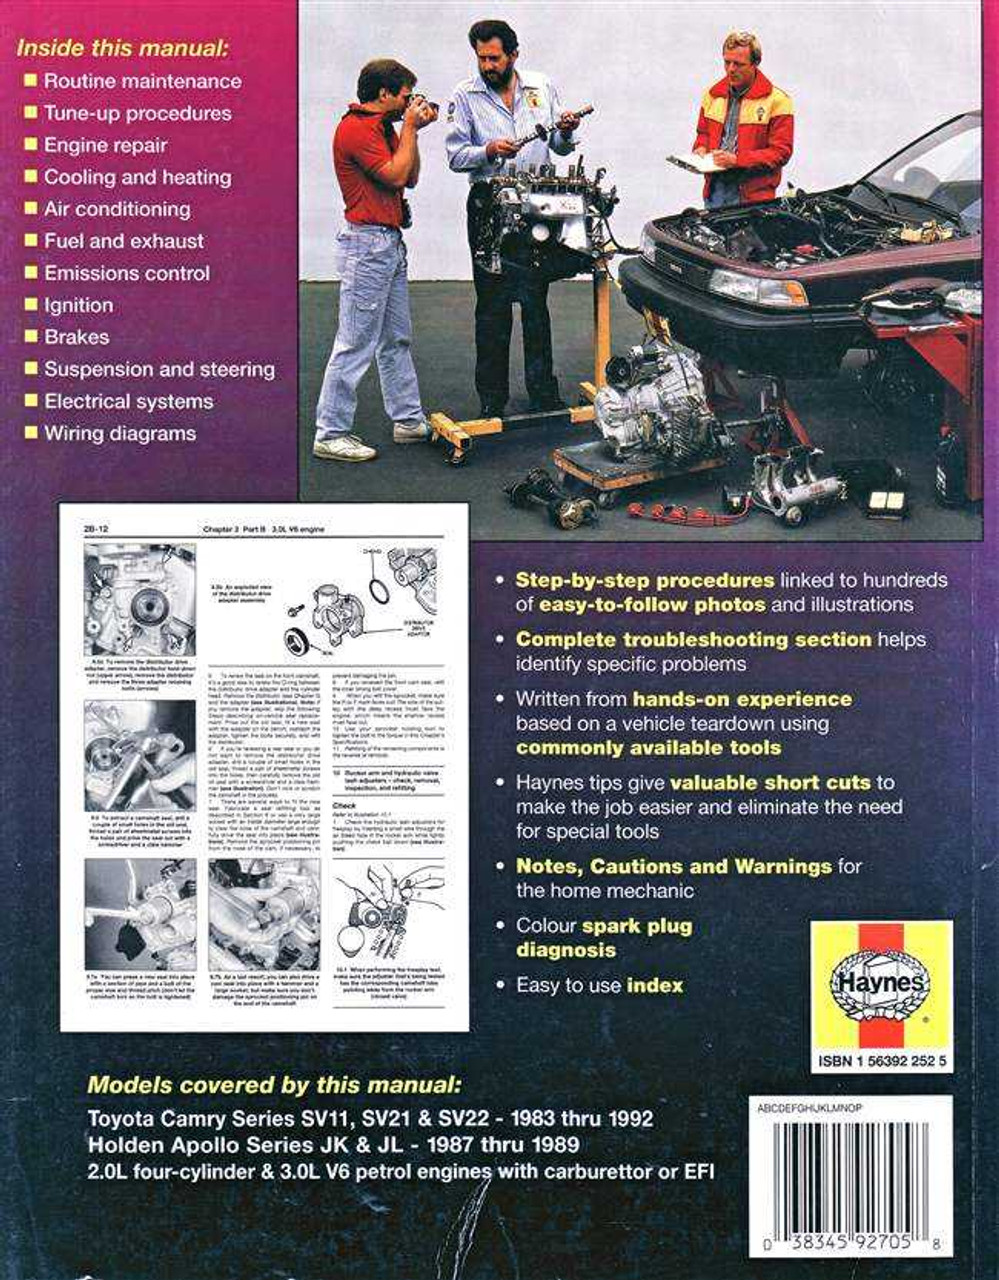 small resolution of toyota camry sv11 sv21 sv22 holden apollo jk jl 1983 1992 workshop manual